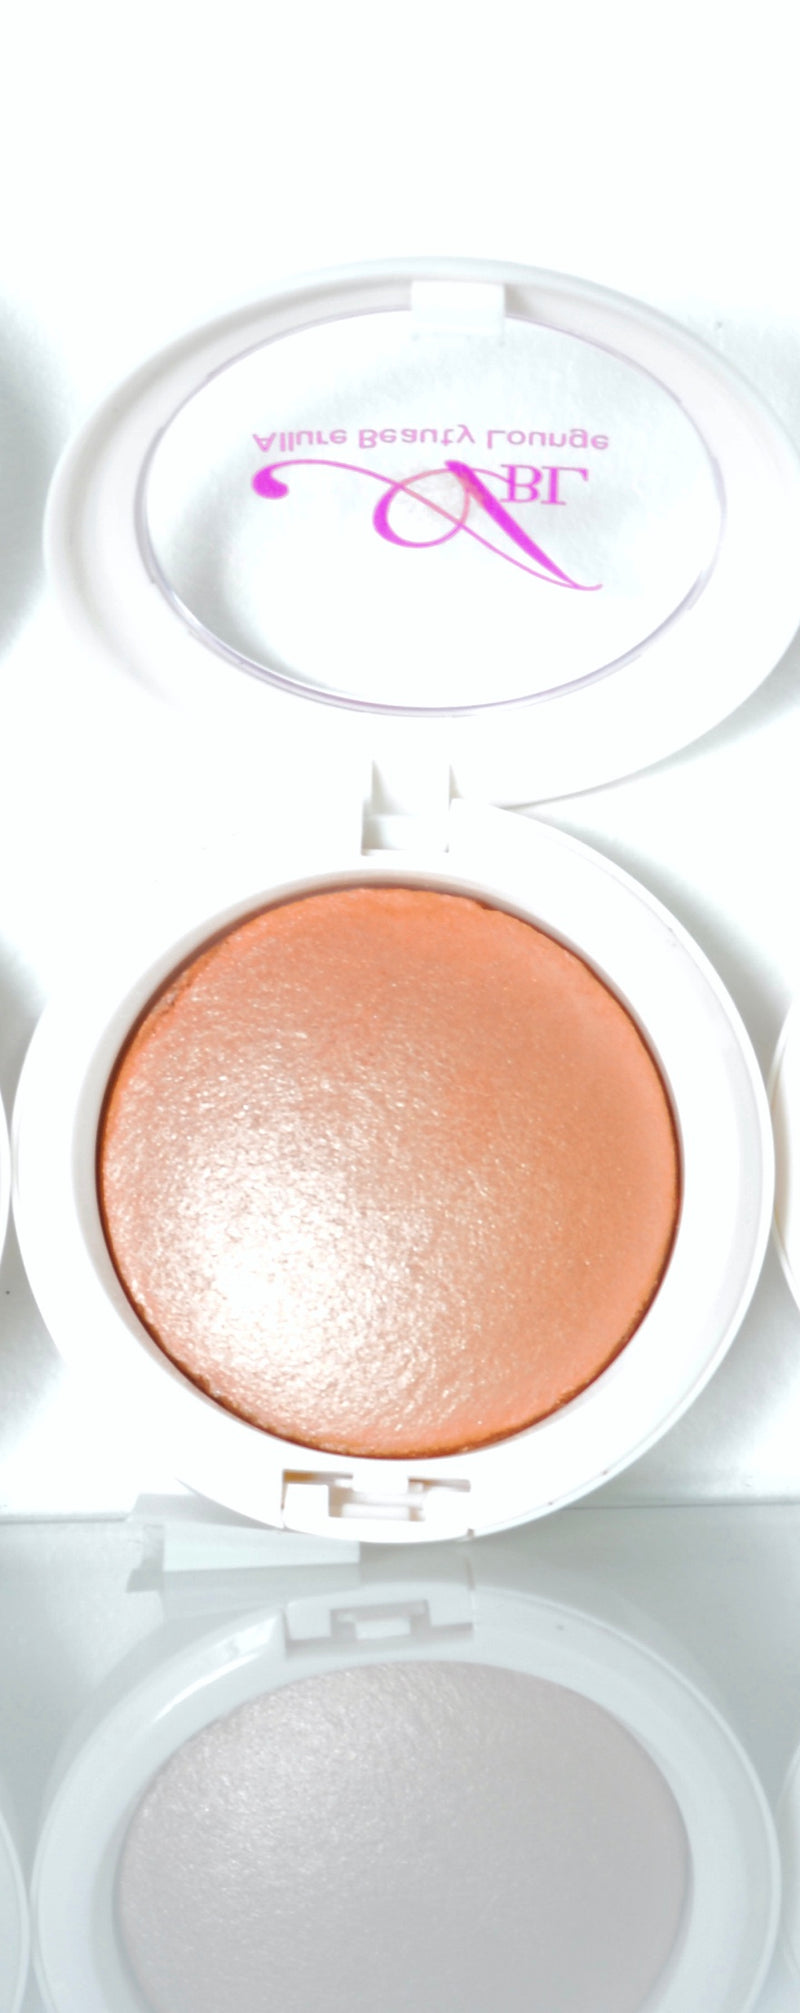 Highlighting Powder